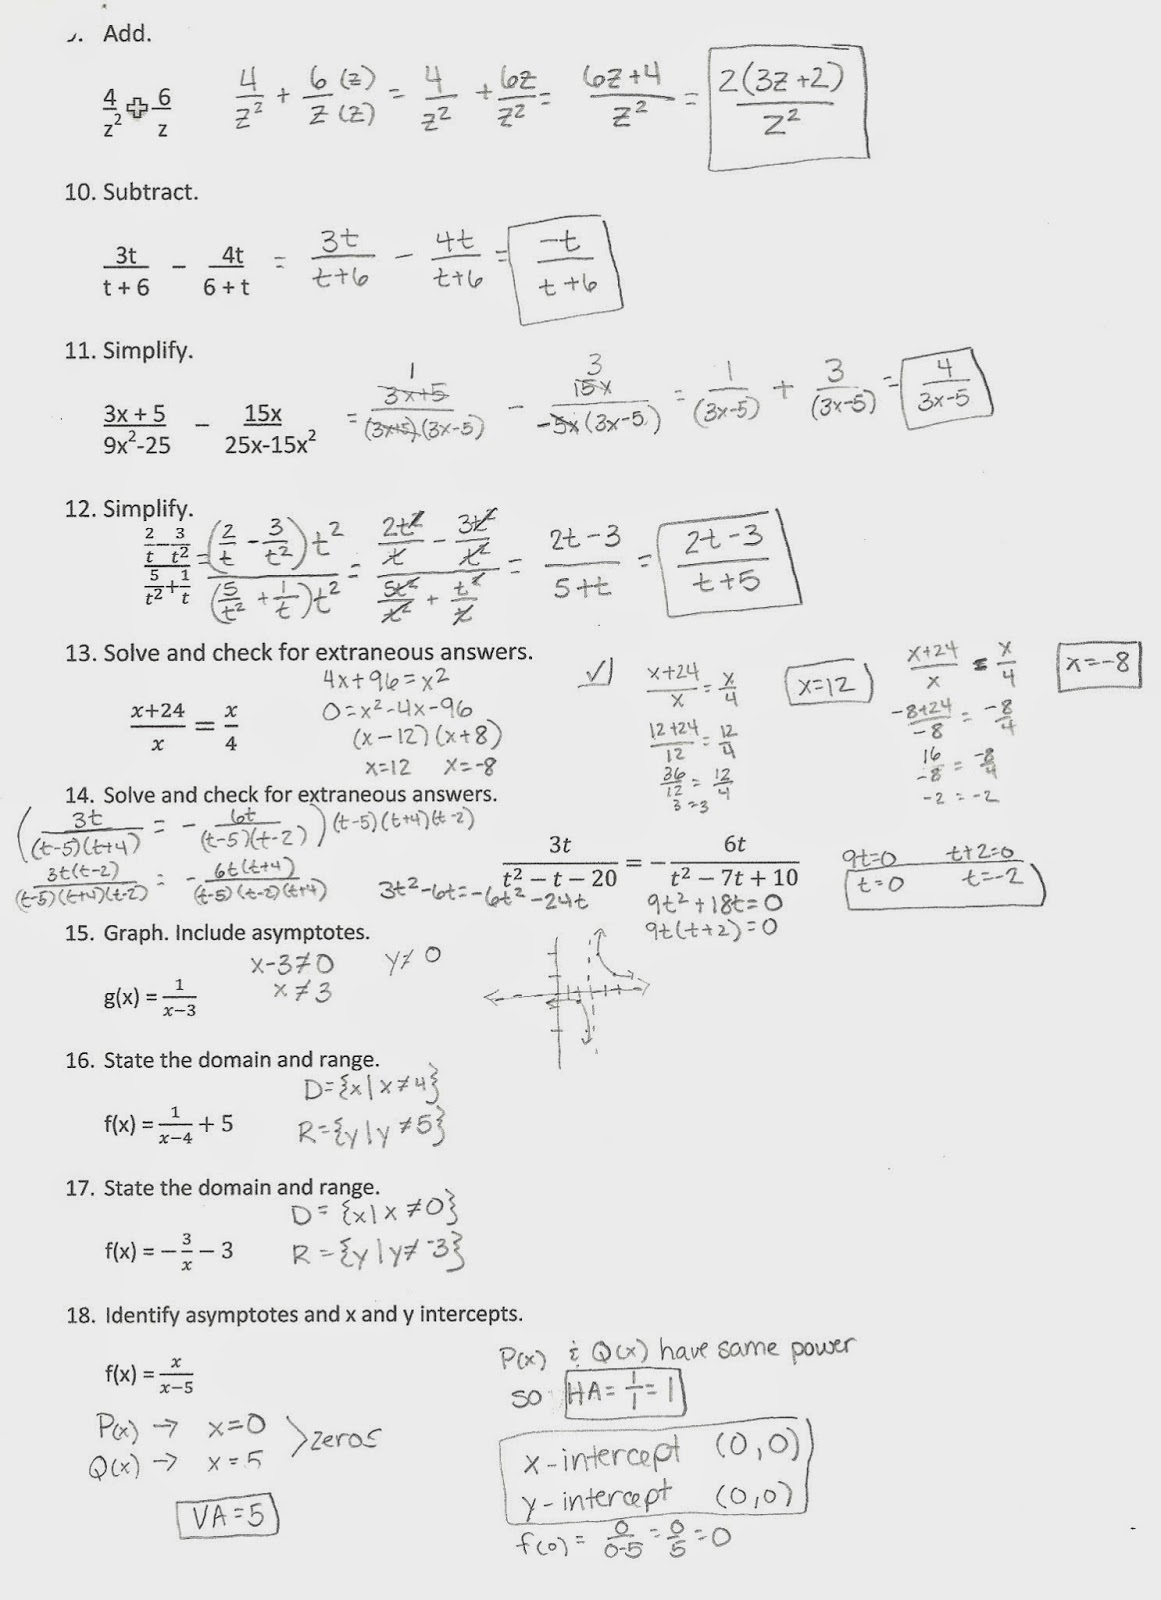 Worksheet Holt Mcdougal Algebra 2 Worksheet Answers